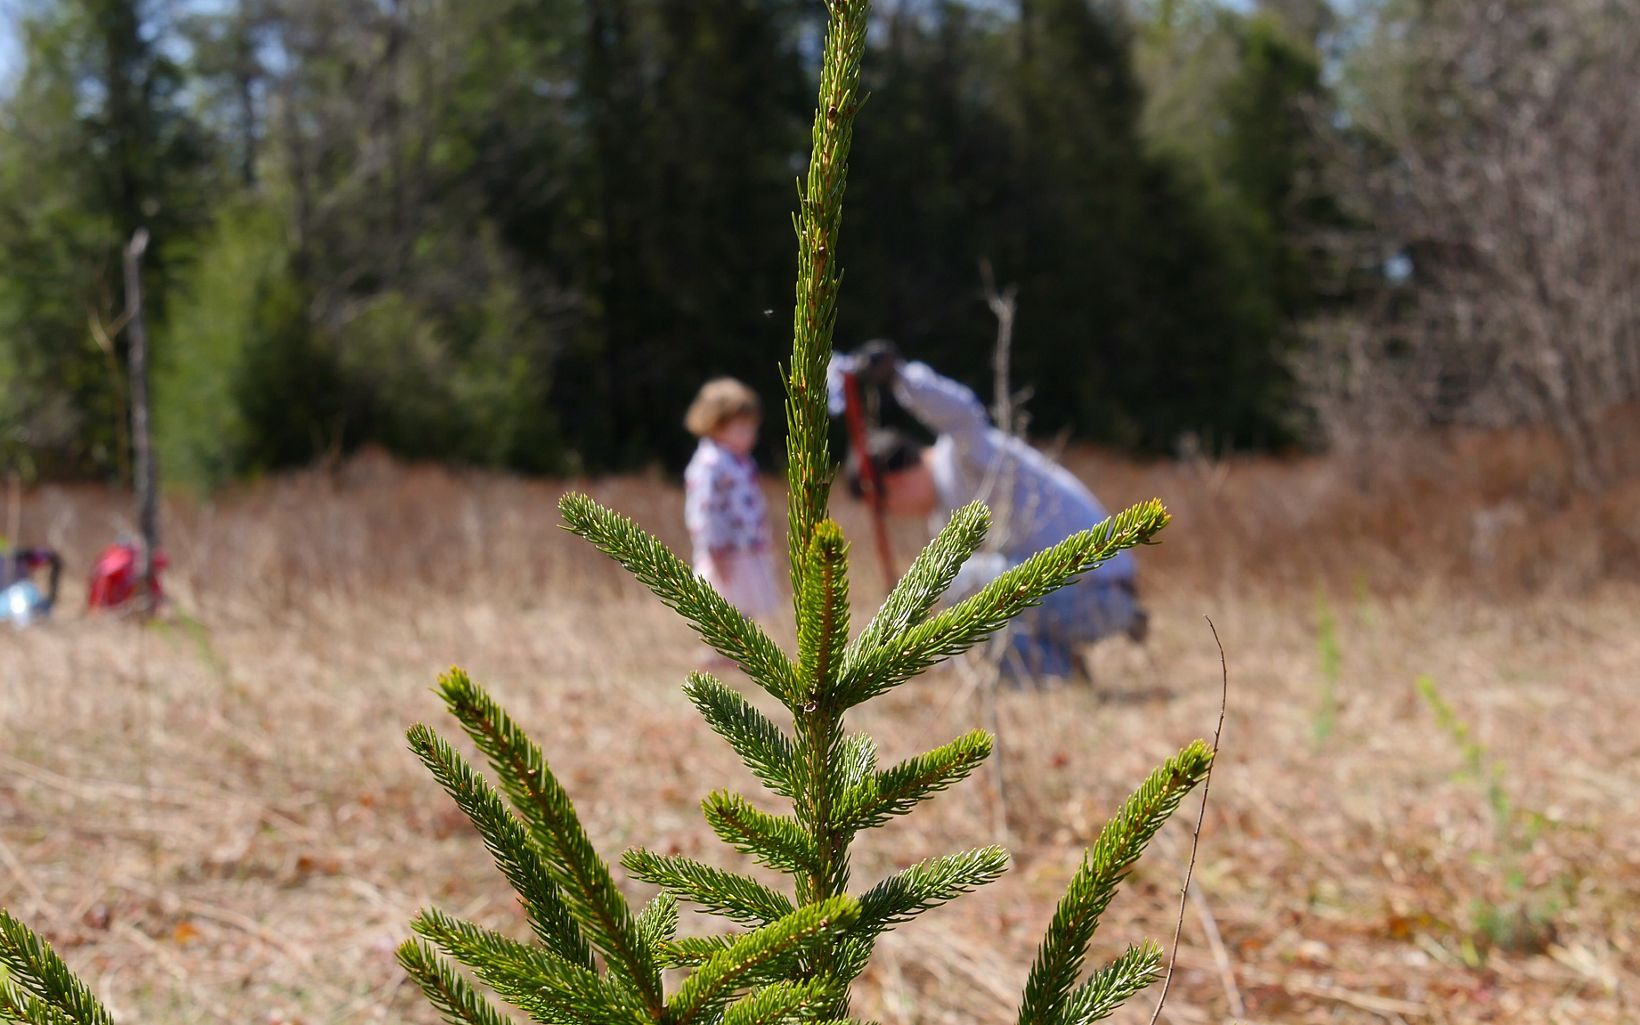 Close up view of the top of a red spruce seedling. In the background, a man kneels on the ground tamping in the dirt around a freshly planted red spruce seedling. A young girl stands next to him.